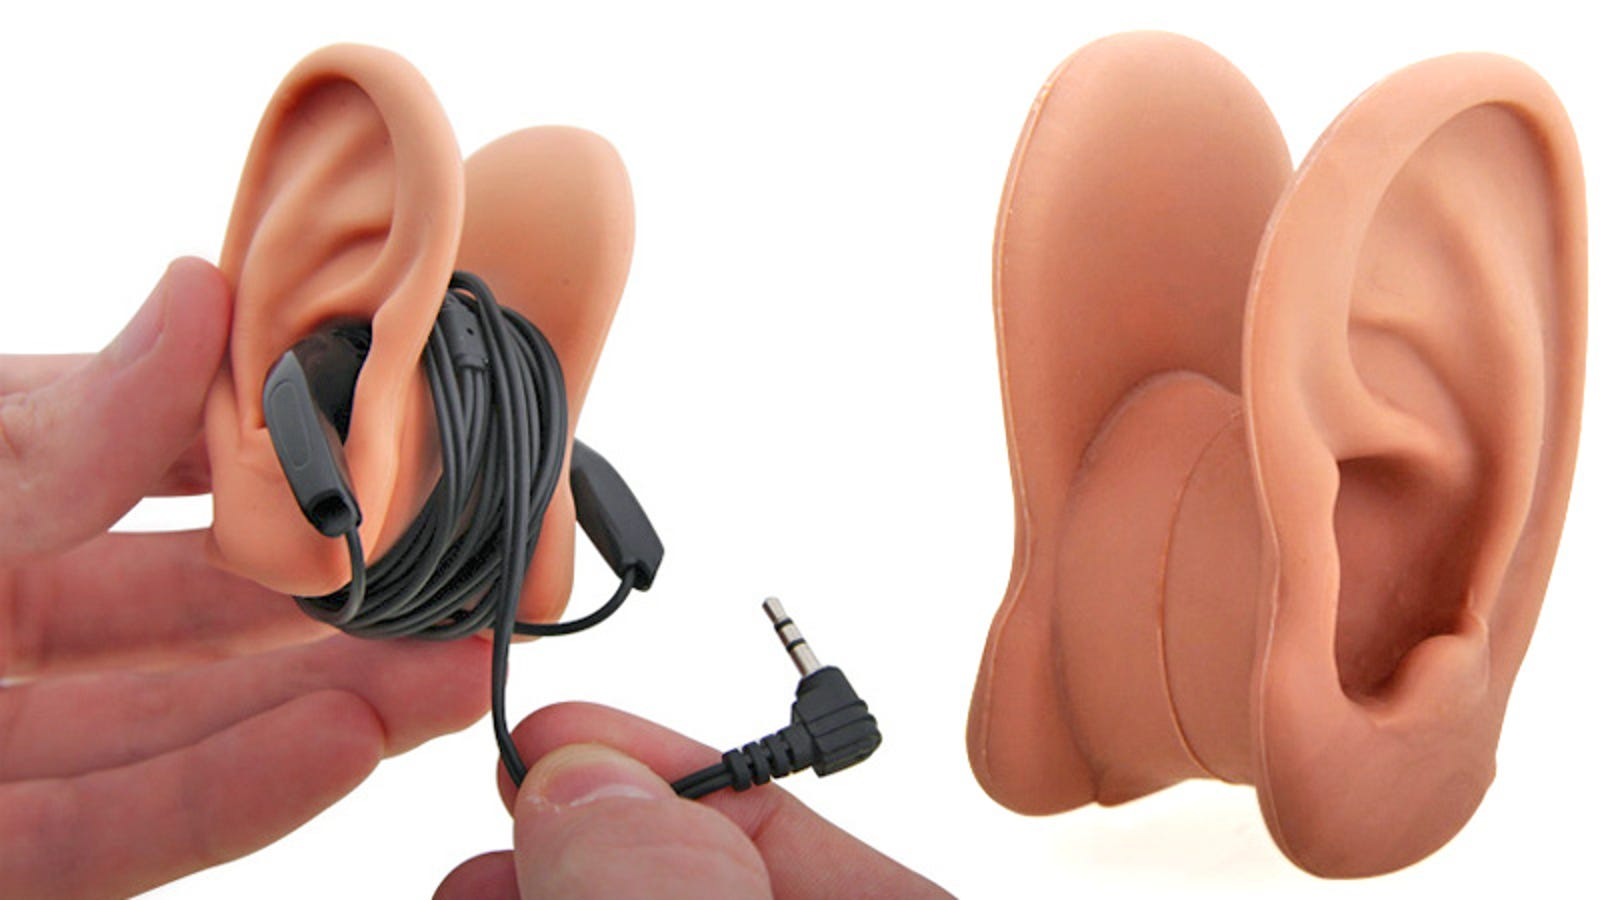 sony clip earbuds - Where Better To Store Your Earbuds Than On a Pair Of Ears?